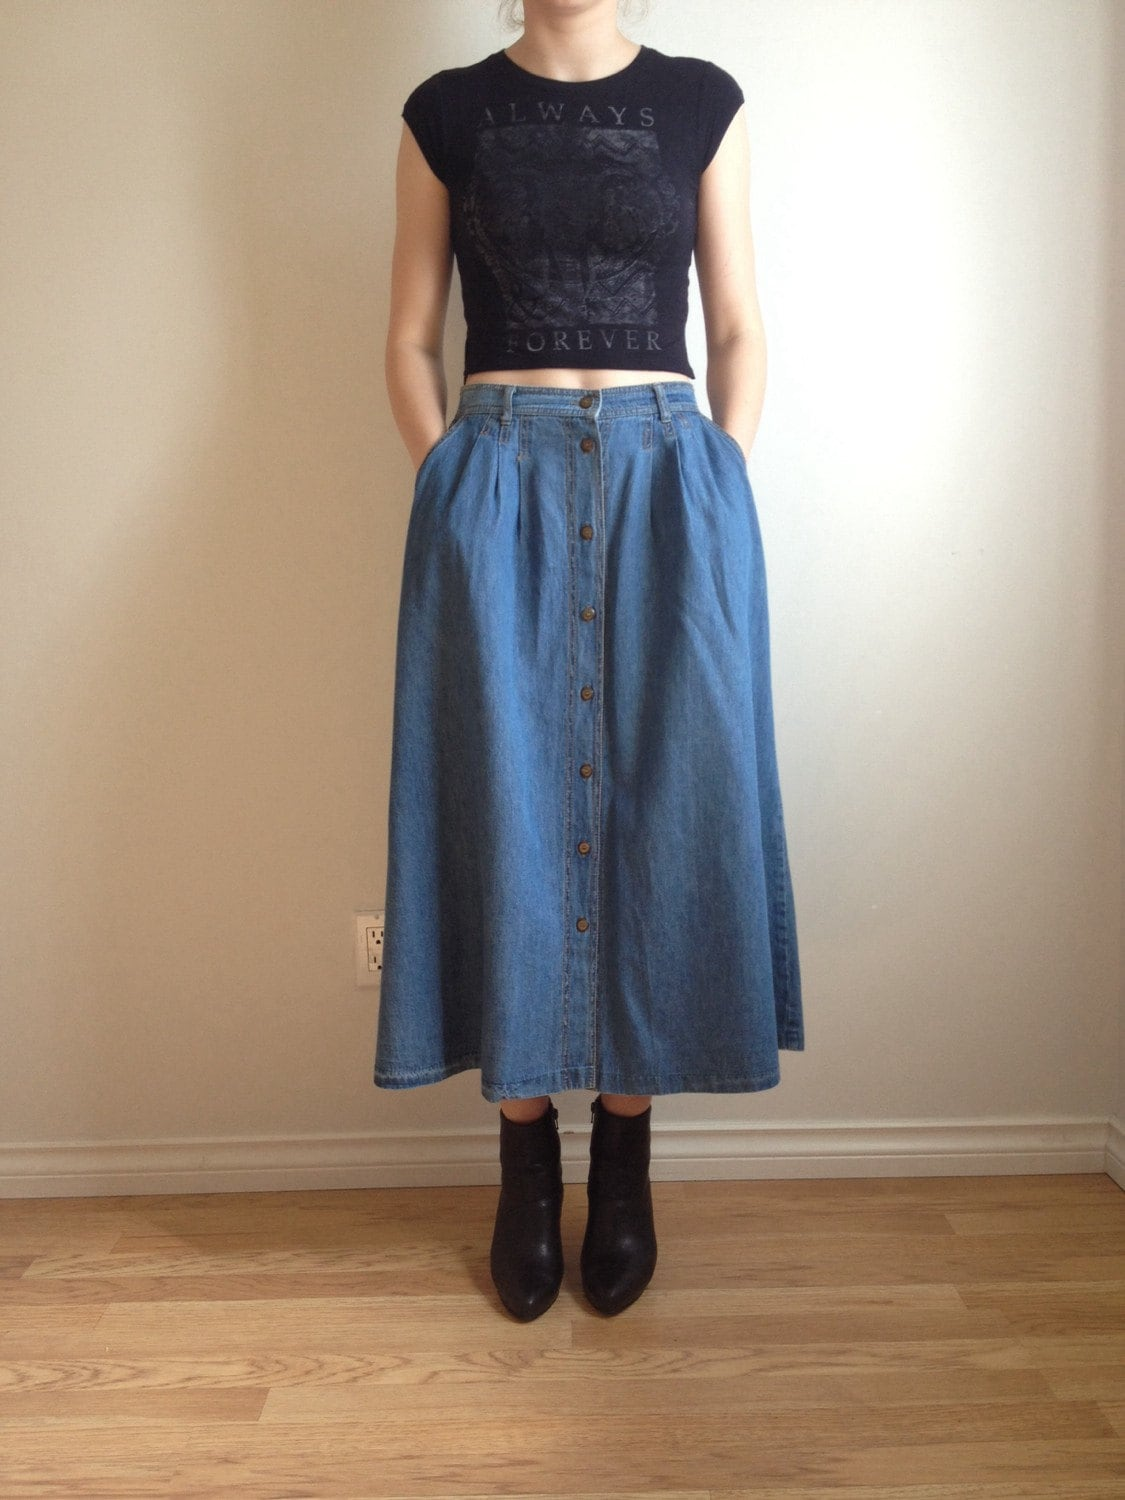 90s Jean Midi Skirt Button Down Jean Skirt Skirt With